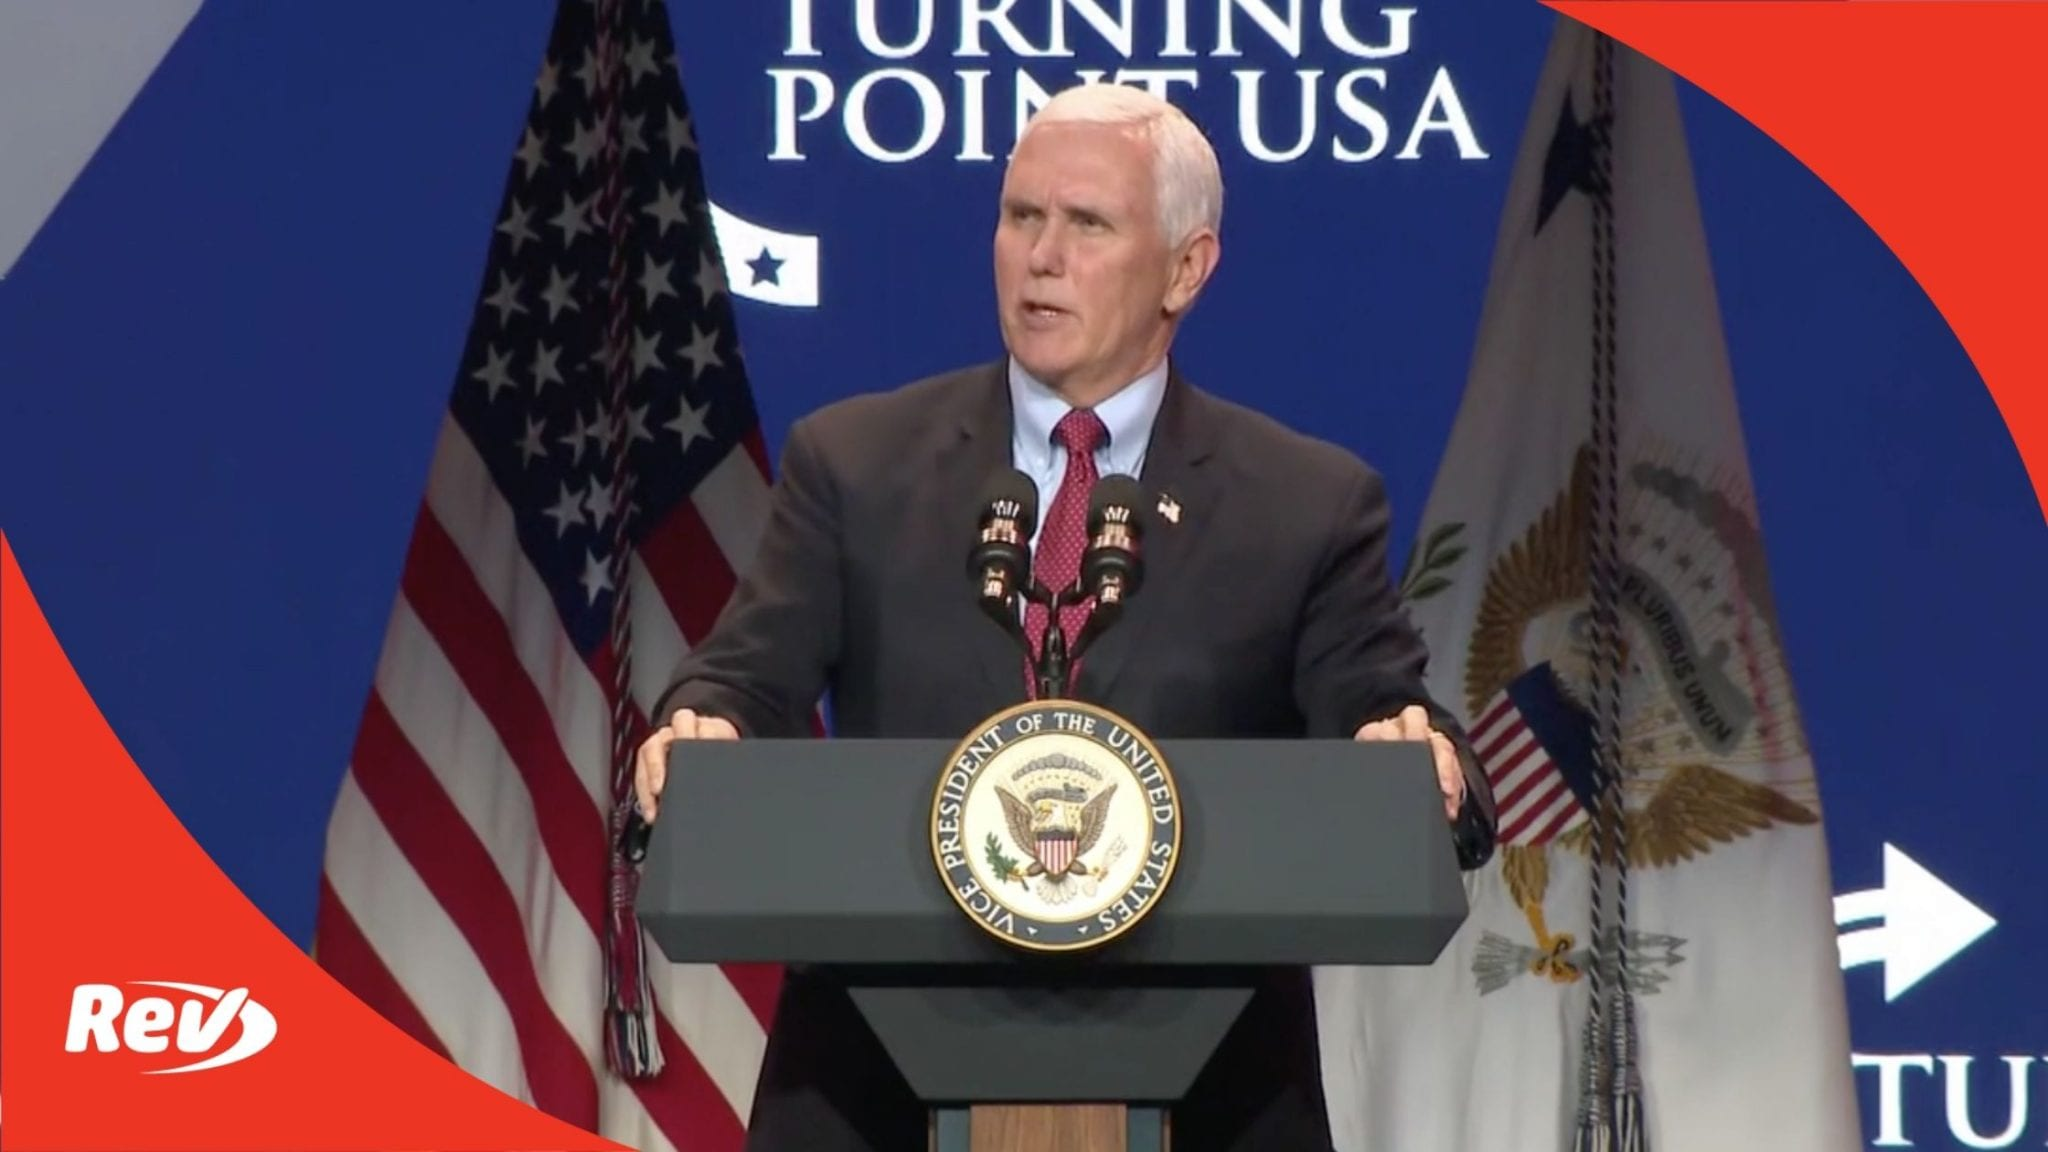 Mike Pence Speech at Turning Point USA Event Transcript December 22